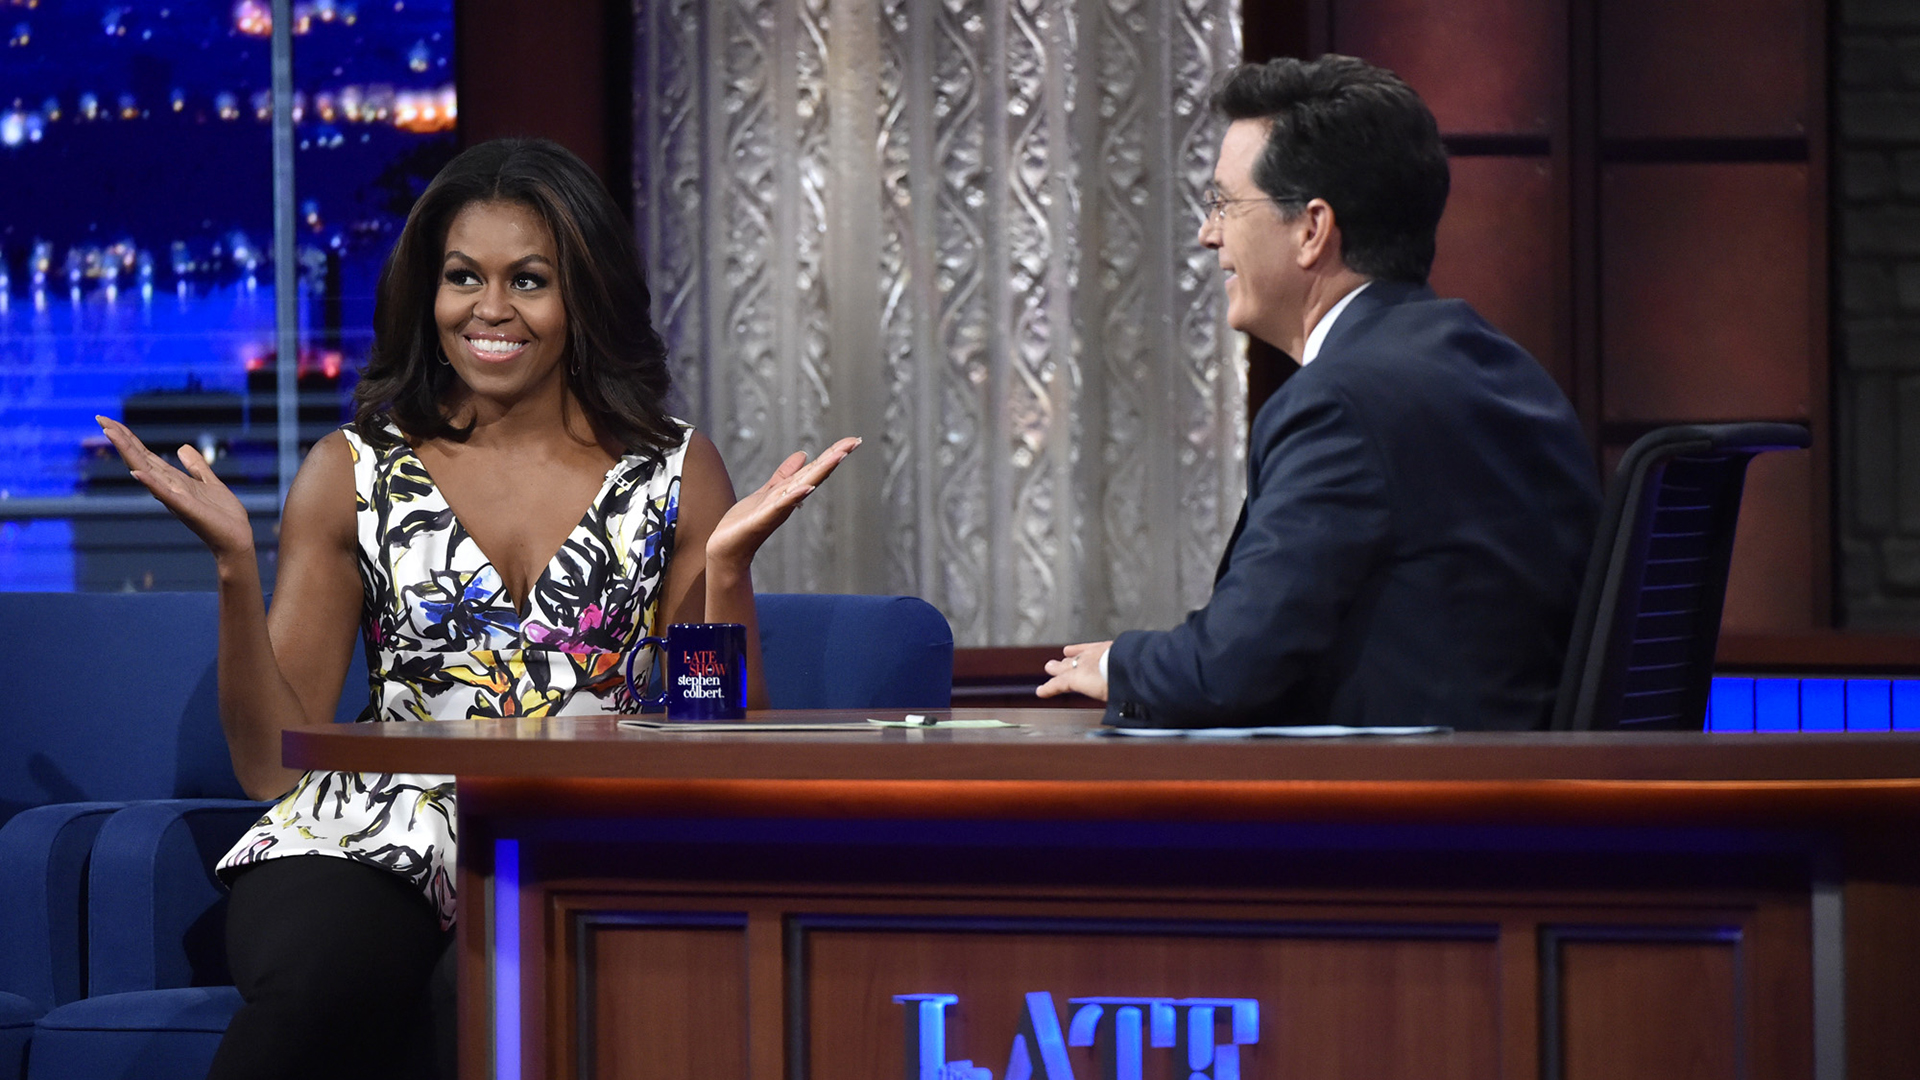 Michelle Obama and Stephen Colbert